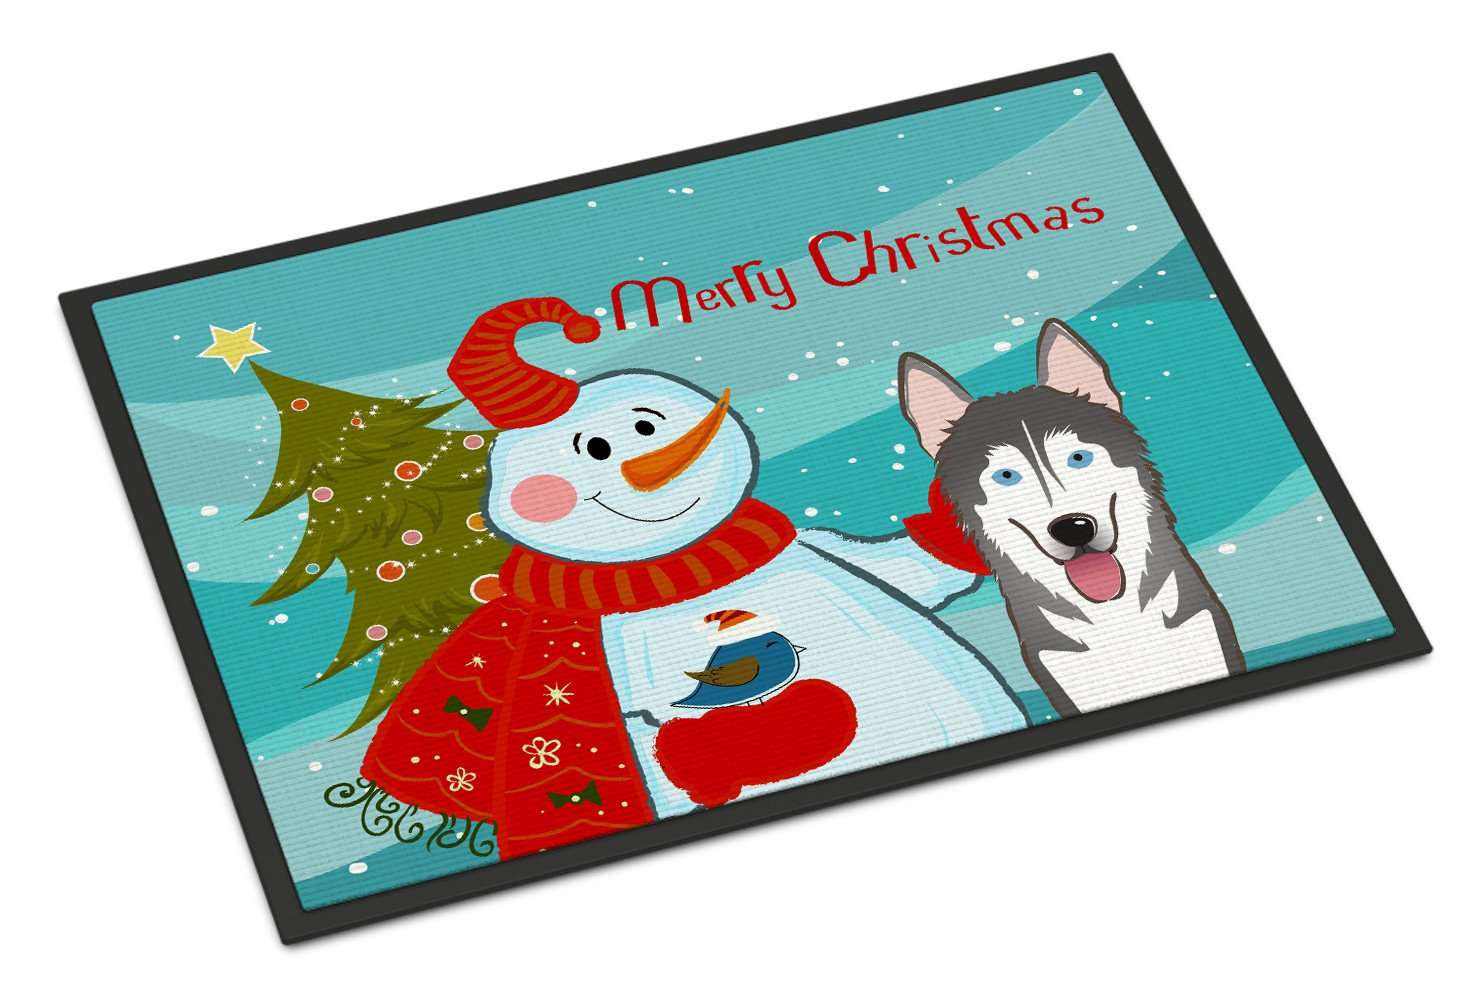 Snowman with Alaskan Malamute Indoor or Outdoor Mat 18x27 BB1838MAT by Caroline's Treasures